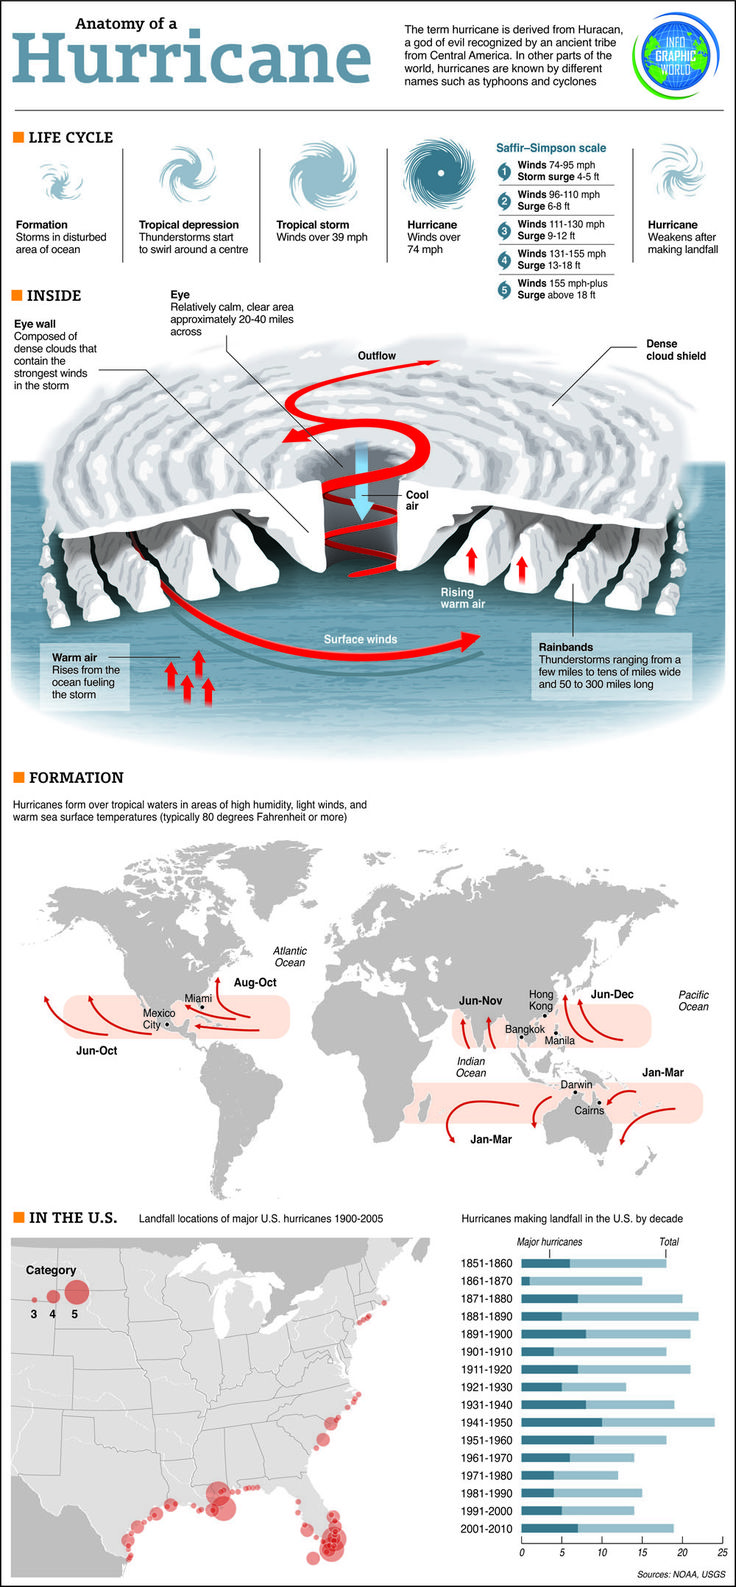 This would be a great visual to help teach students about Hurricanes when we go over extreme weather on the Friday of the Unit. It also helps explain where they occur and why it is important to know about.